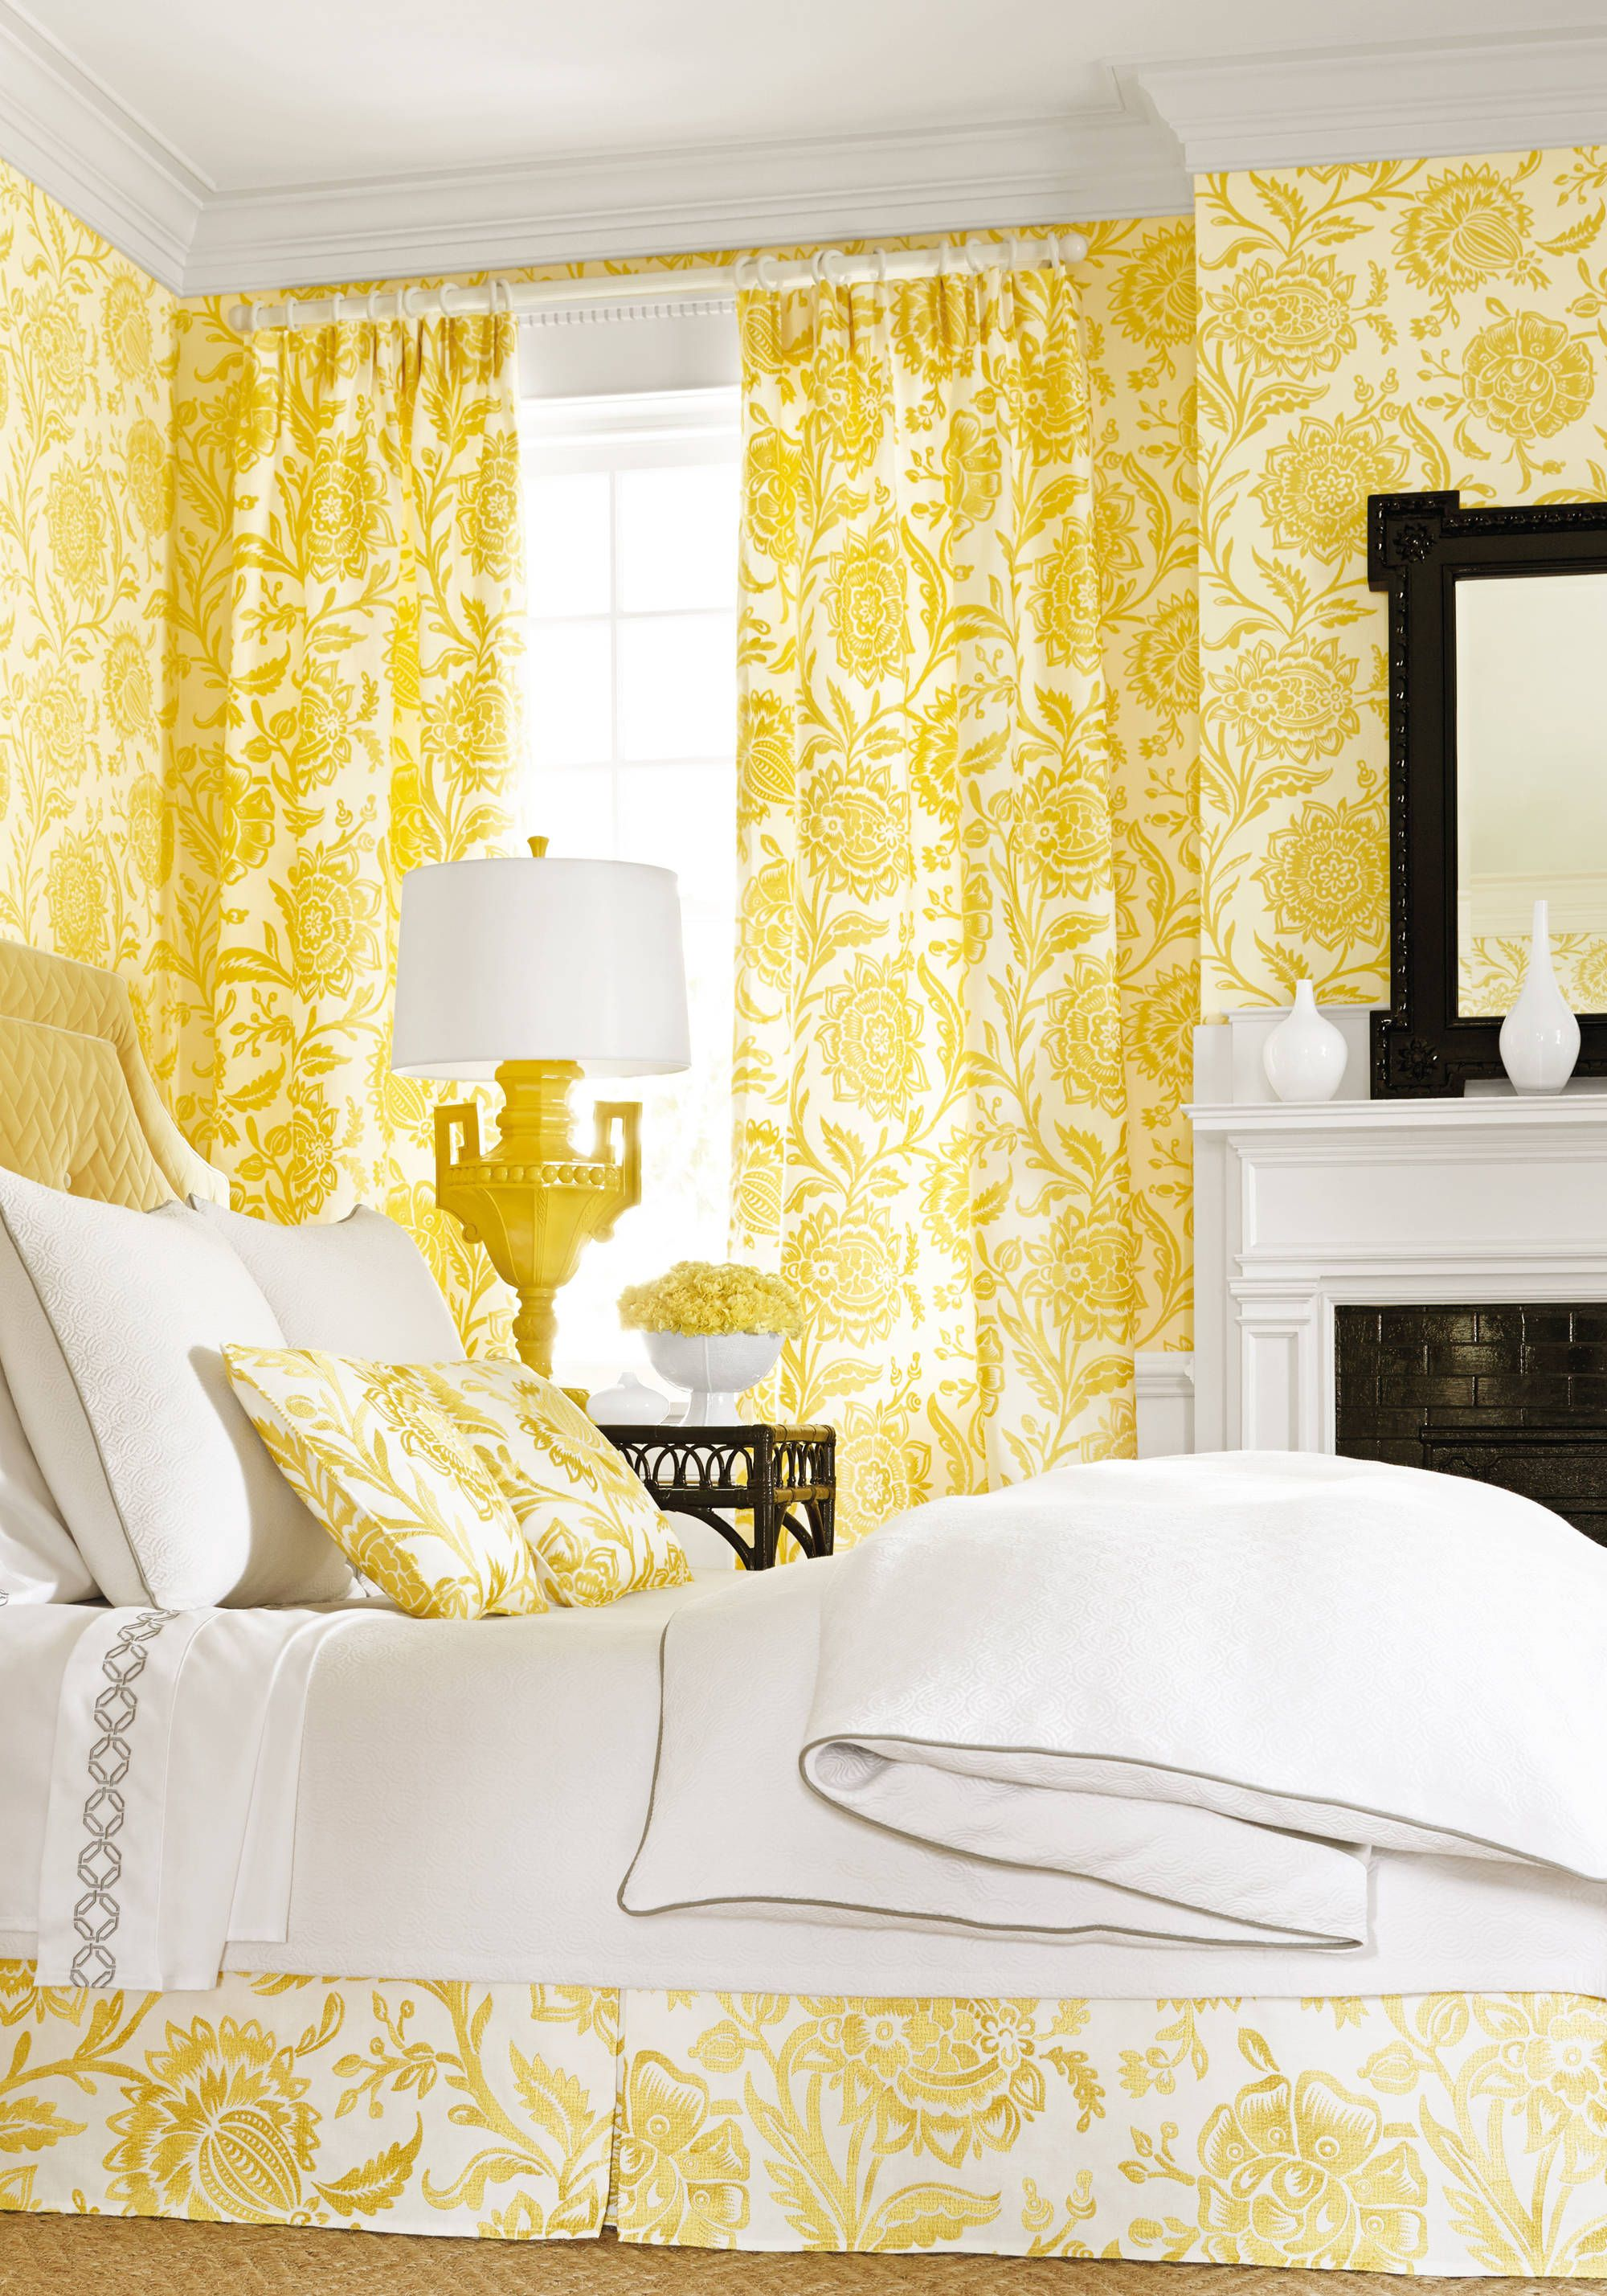 Rivera from Monterey Collection | deco | Pinterest | Bedrooms ...